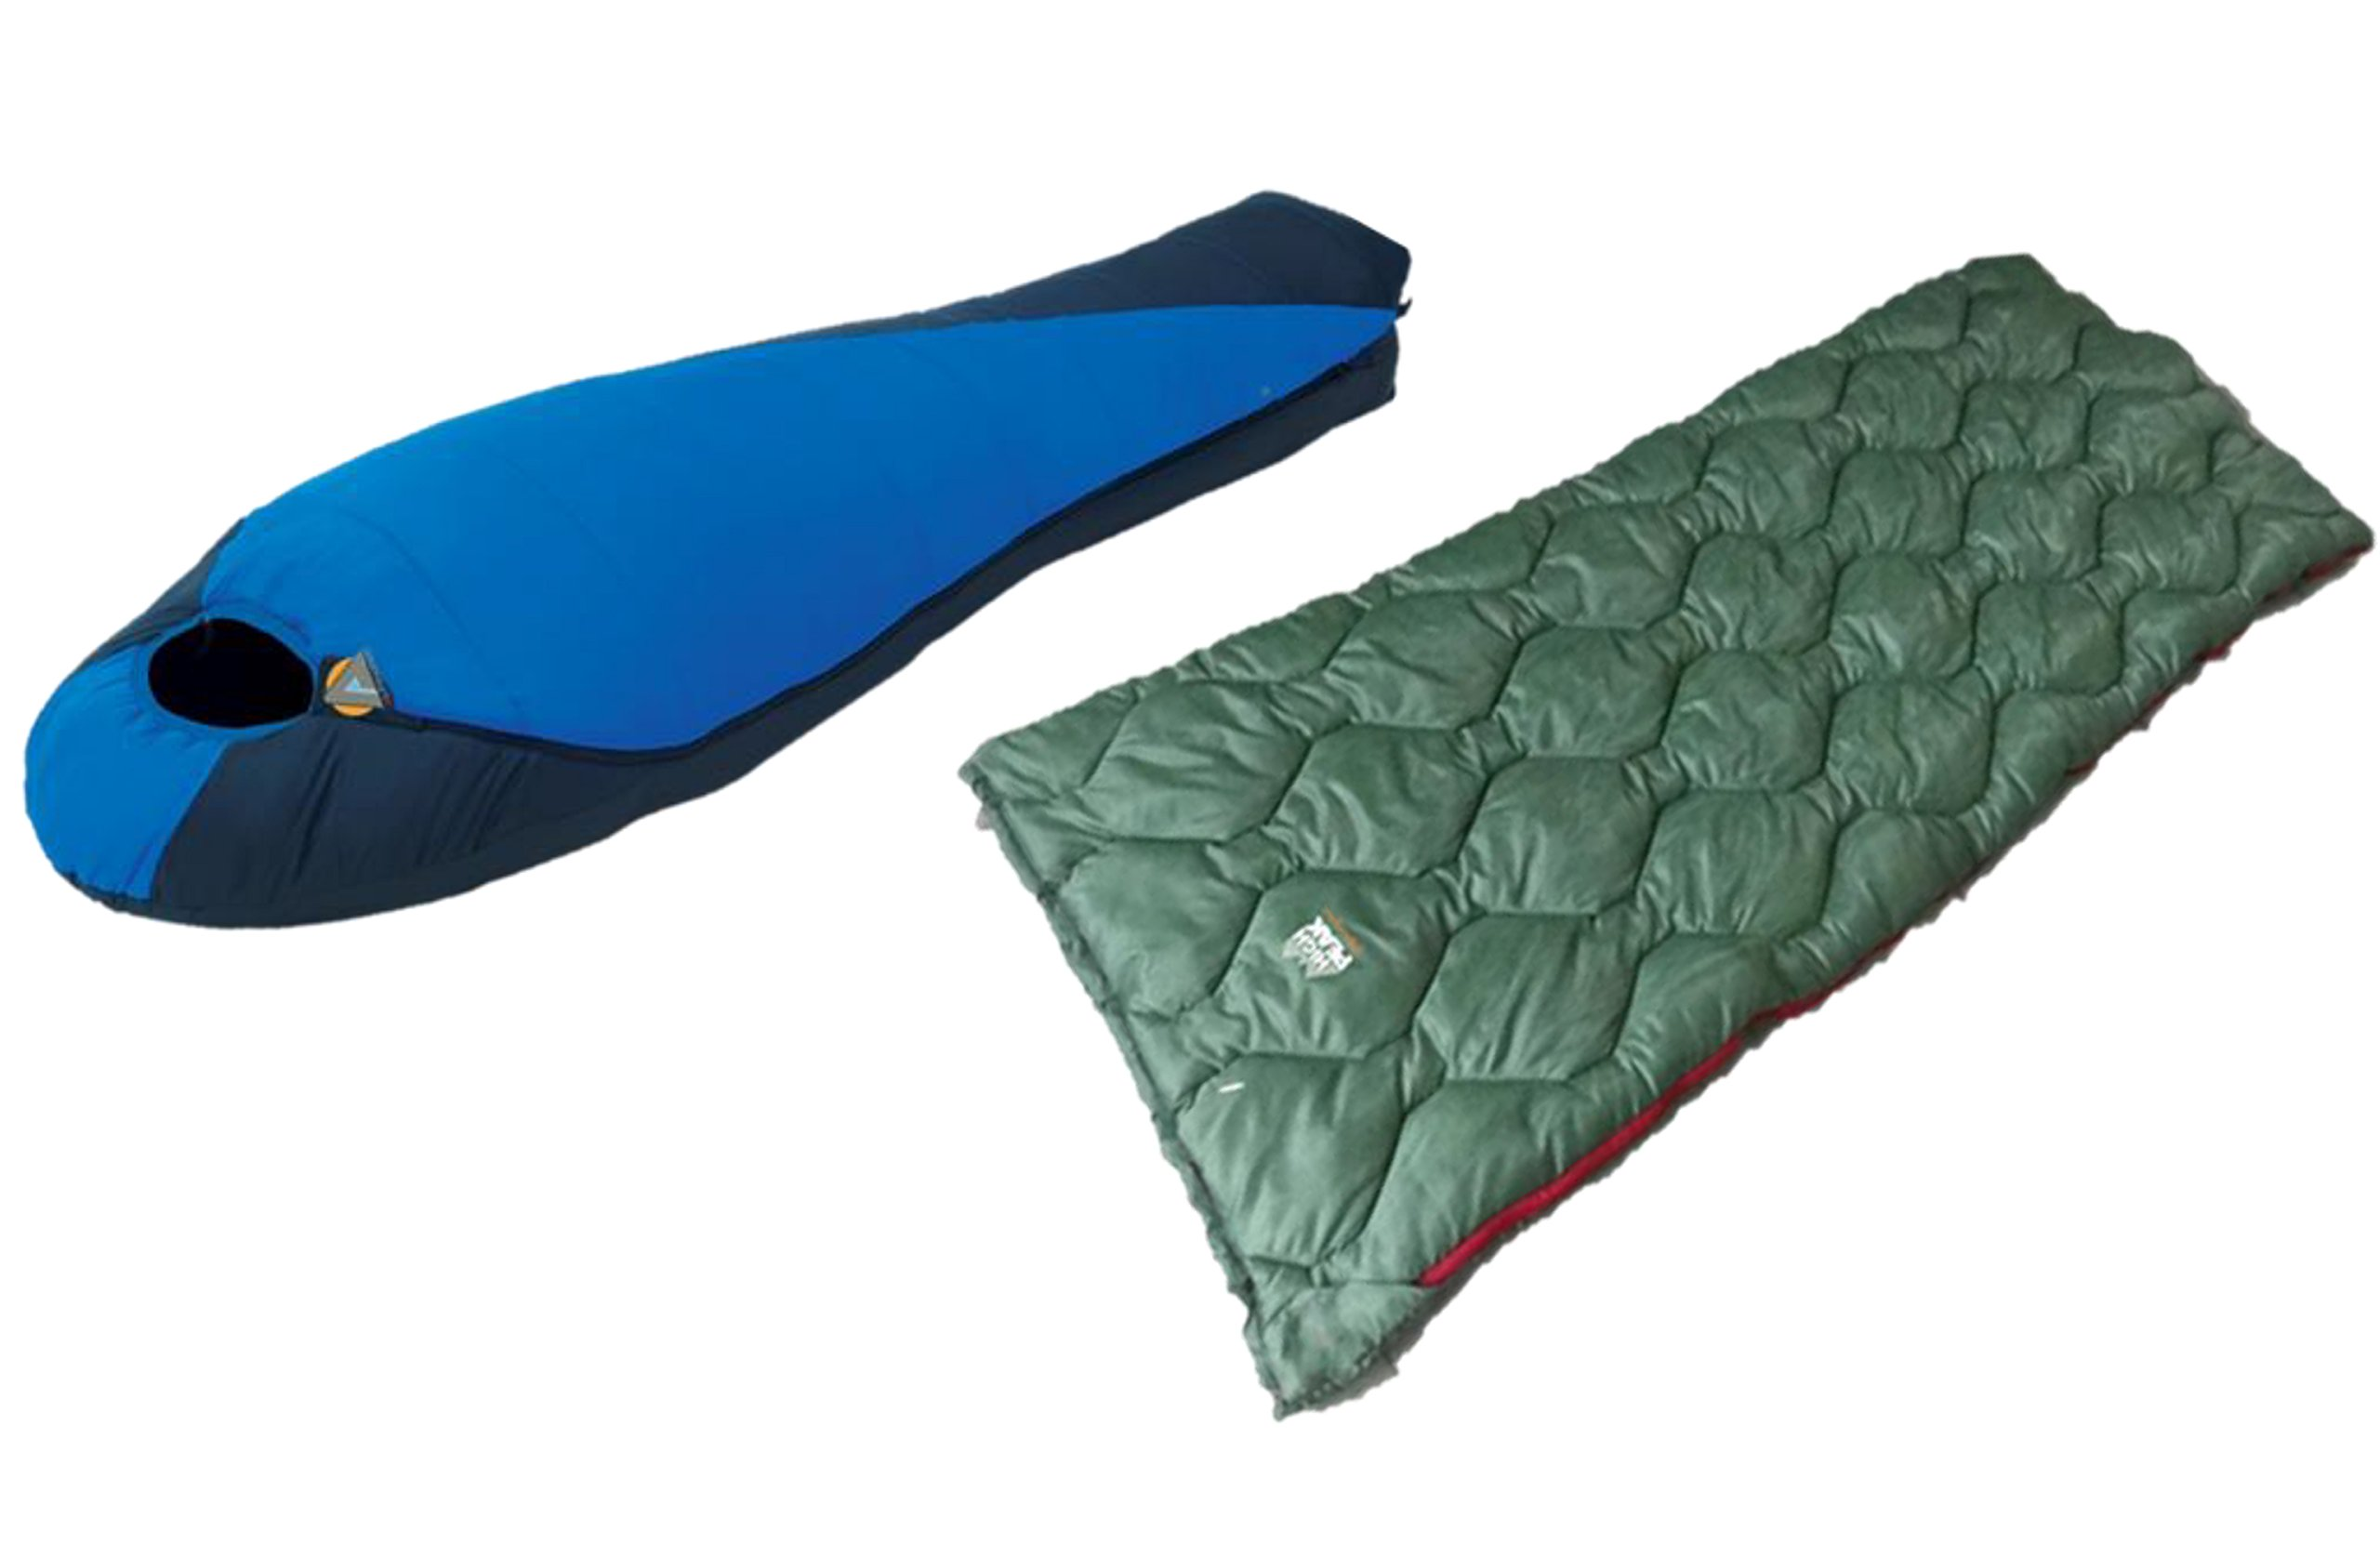 High Peak USA Alpinizmo Ranger 20F + Lite Weight Extreme Pak 0F Sleeping Bag Combo Set, Blue/Green, One Size